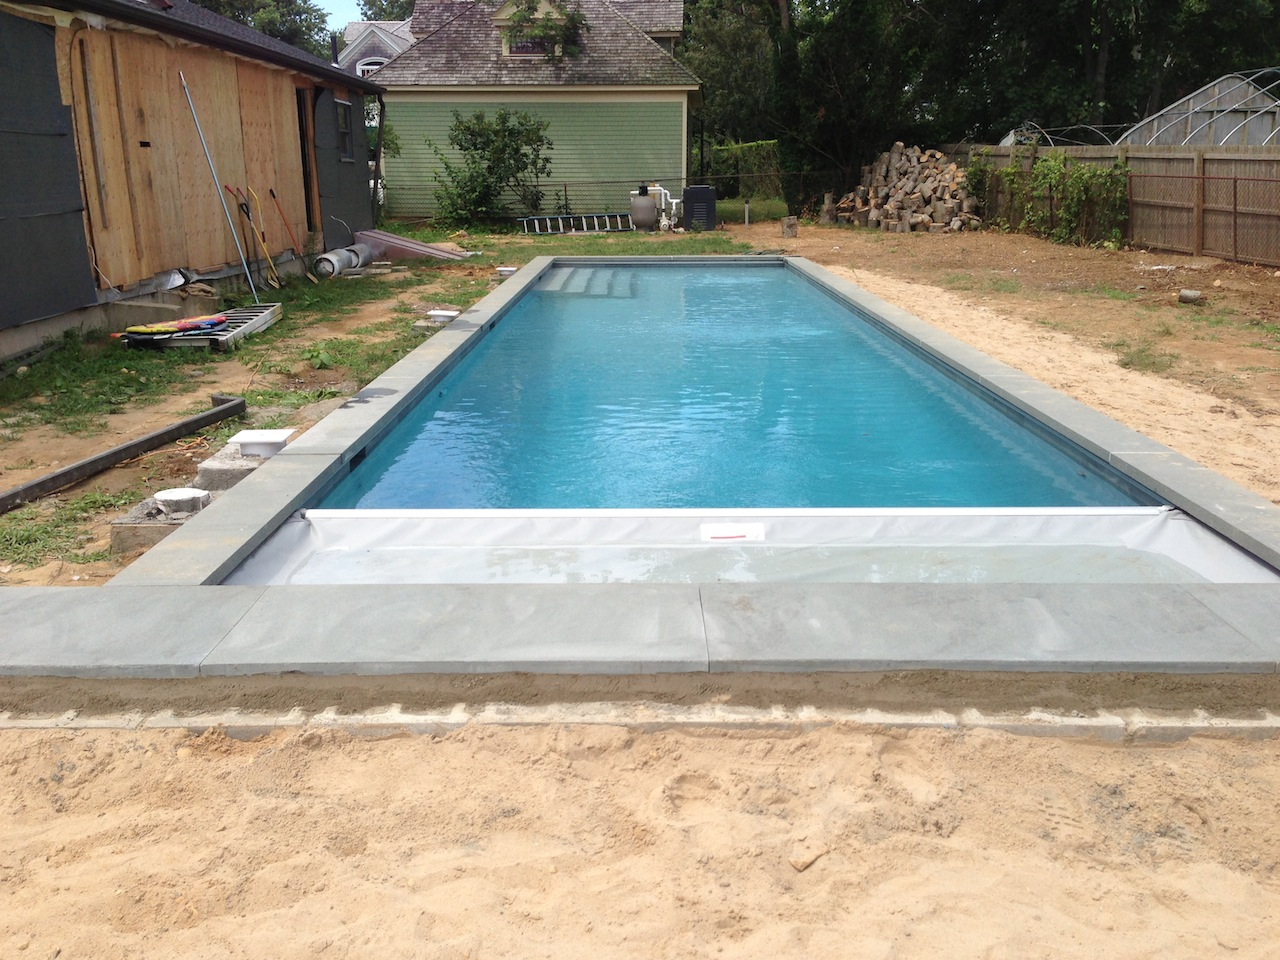 Northfork Orient Point Gunite Lap Pool Installation